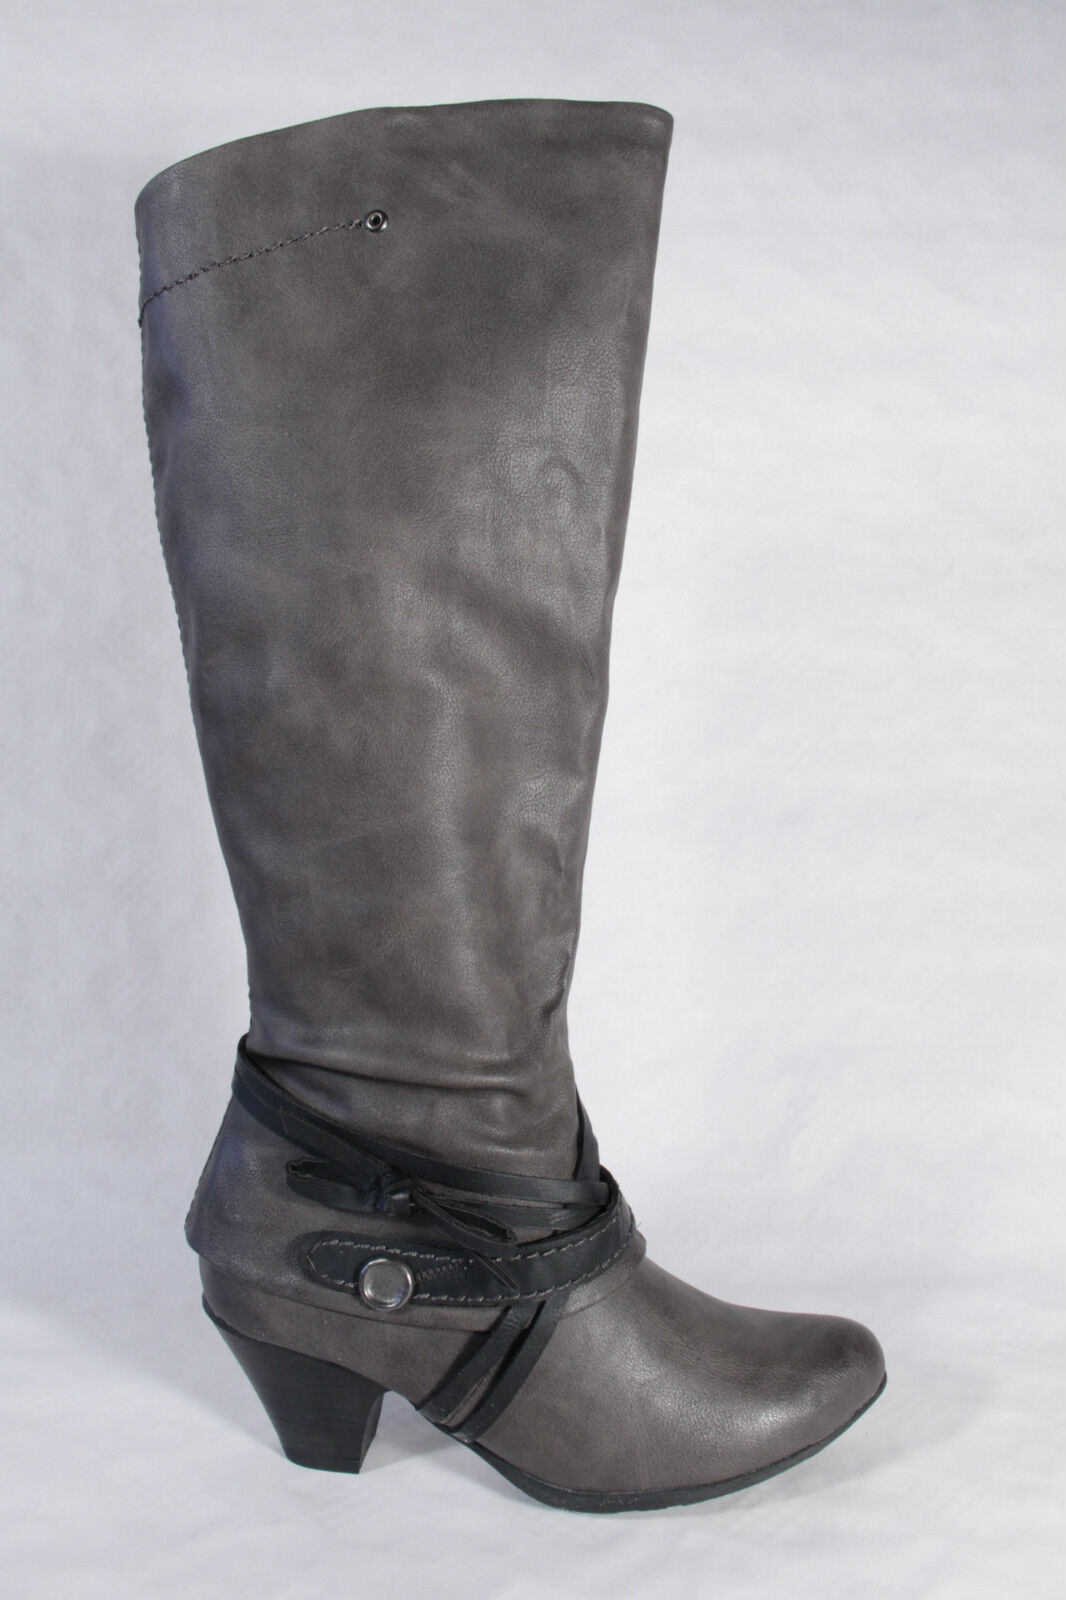 MARCO TOZZI Boots, Grey, Lightly Lined, RV, NEW